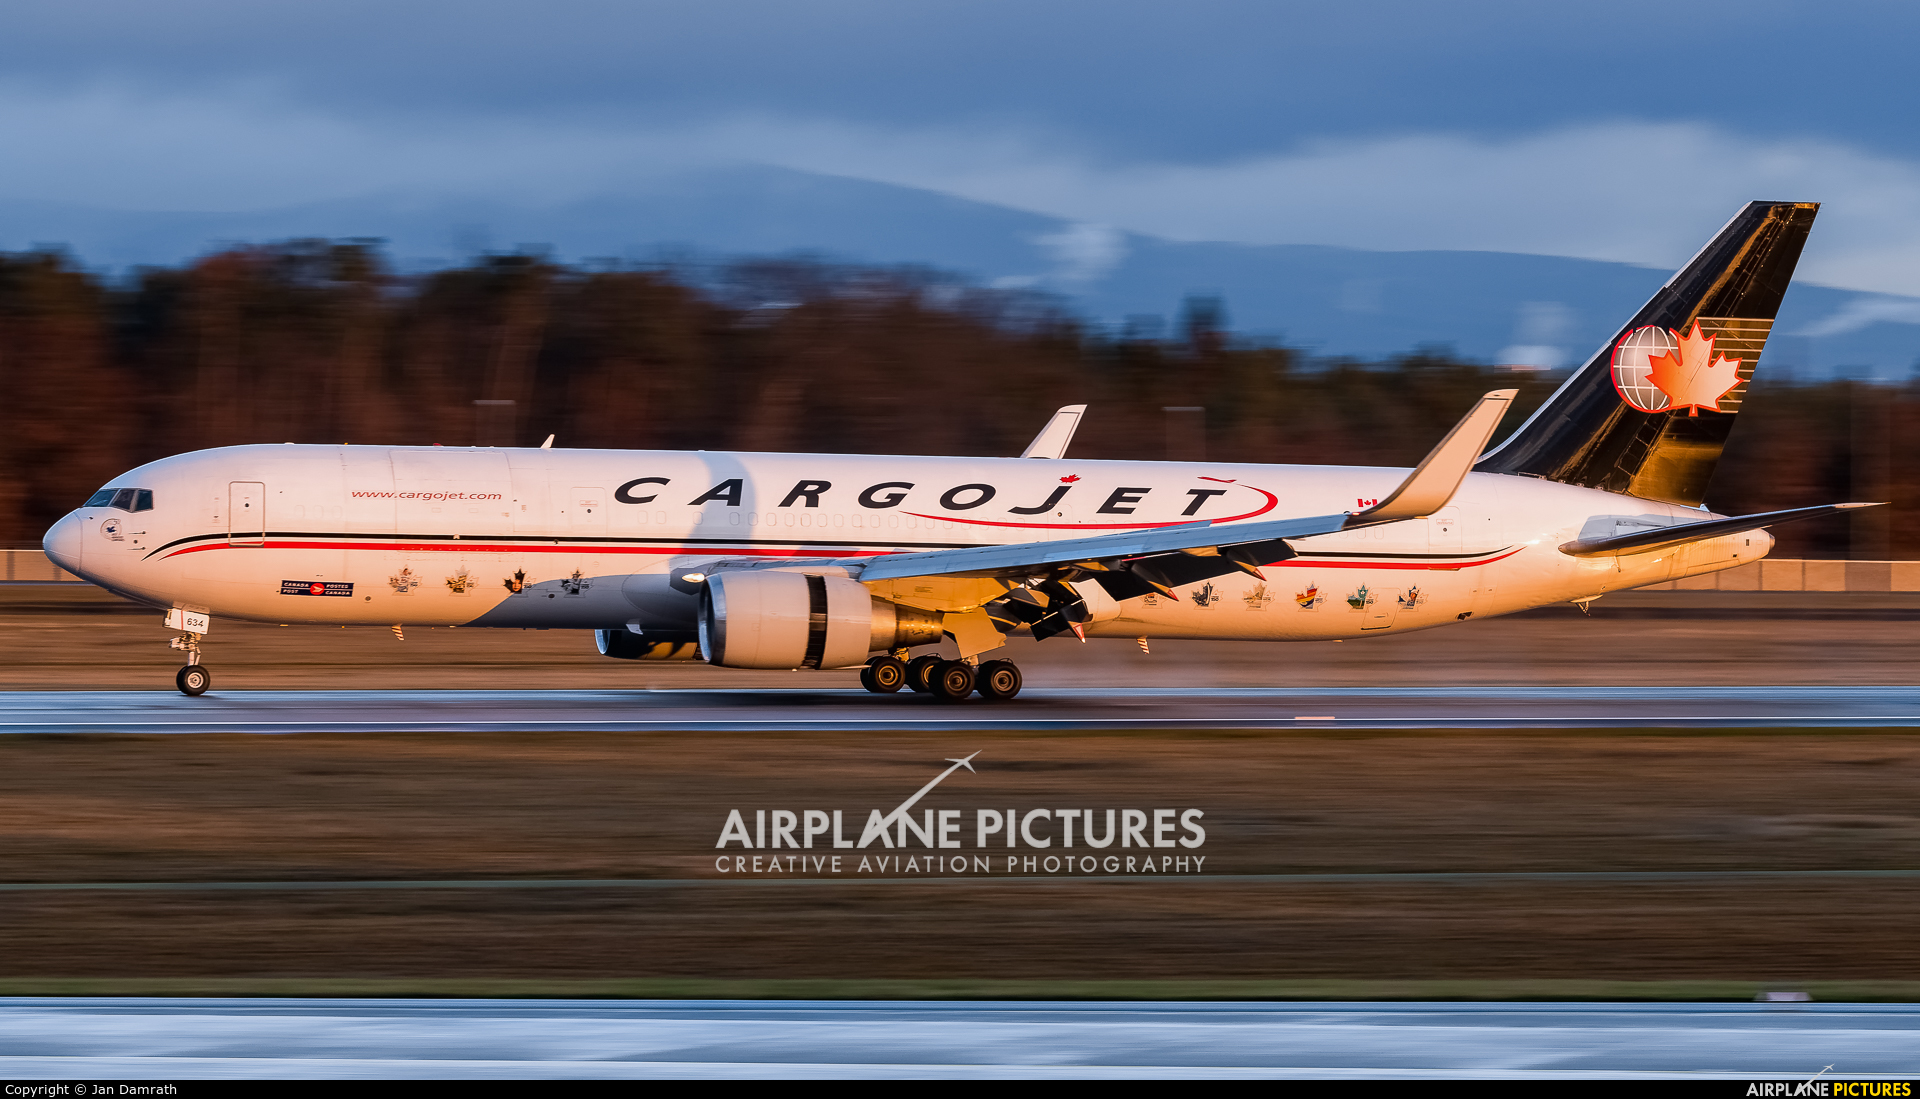 Cargojet Airways C-FGSJ aircraft at Frankfurt